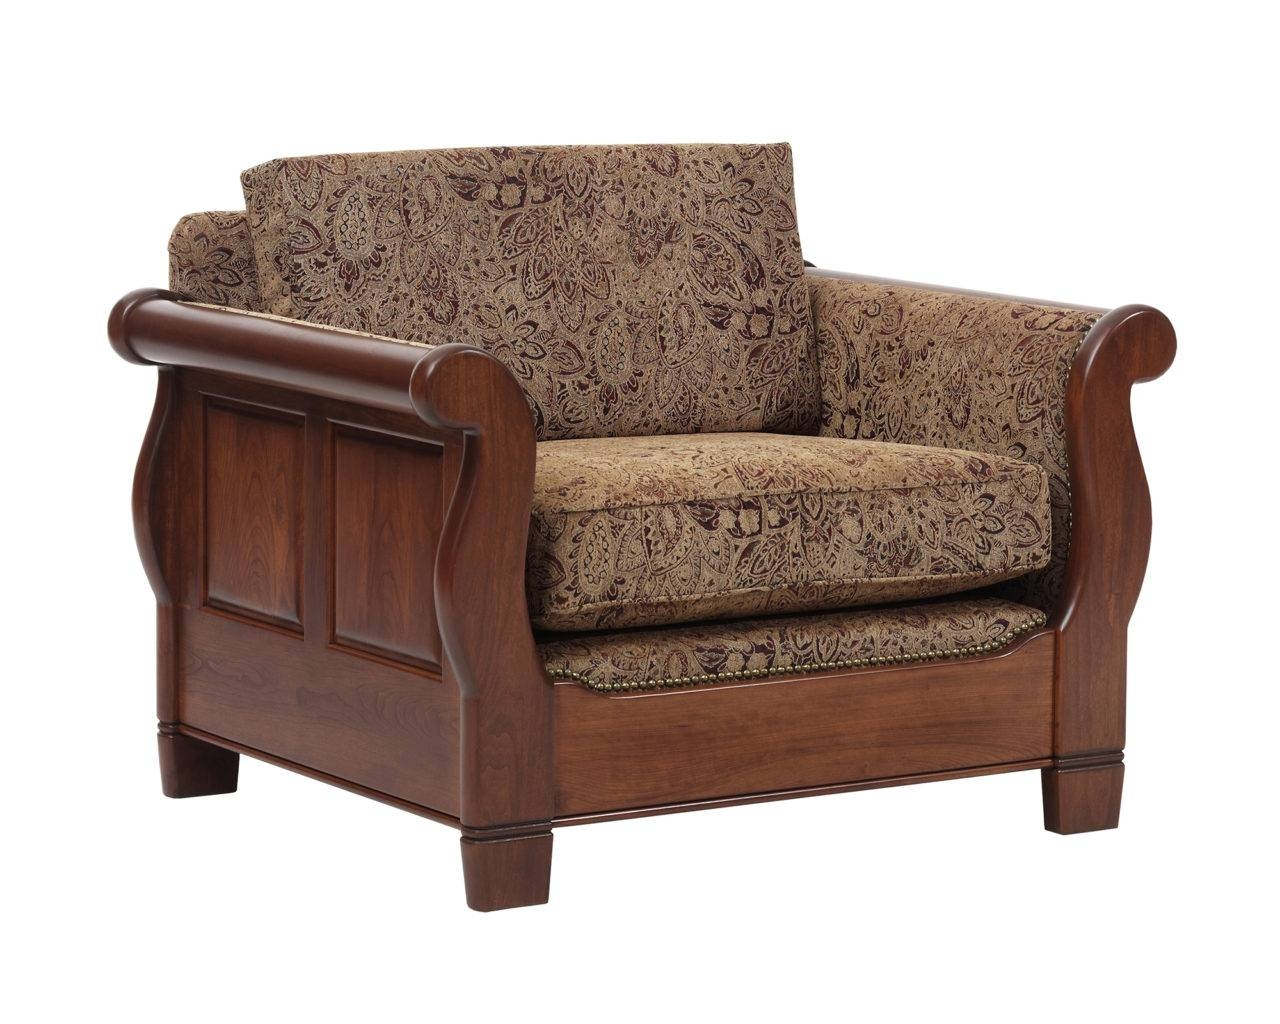 Sleigh Sofa Chair With Single Back Cushion - Gish's Amish Legacies regarding Sofa With Chairs (Image 12 of 15)